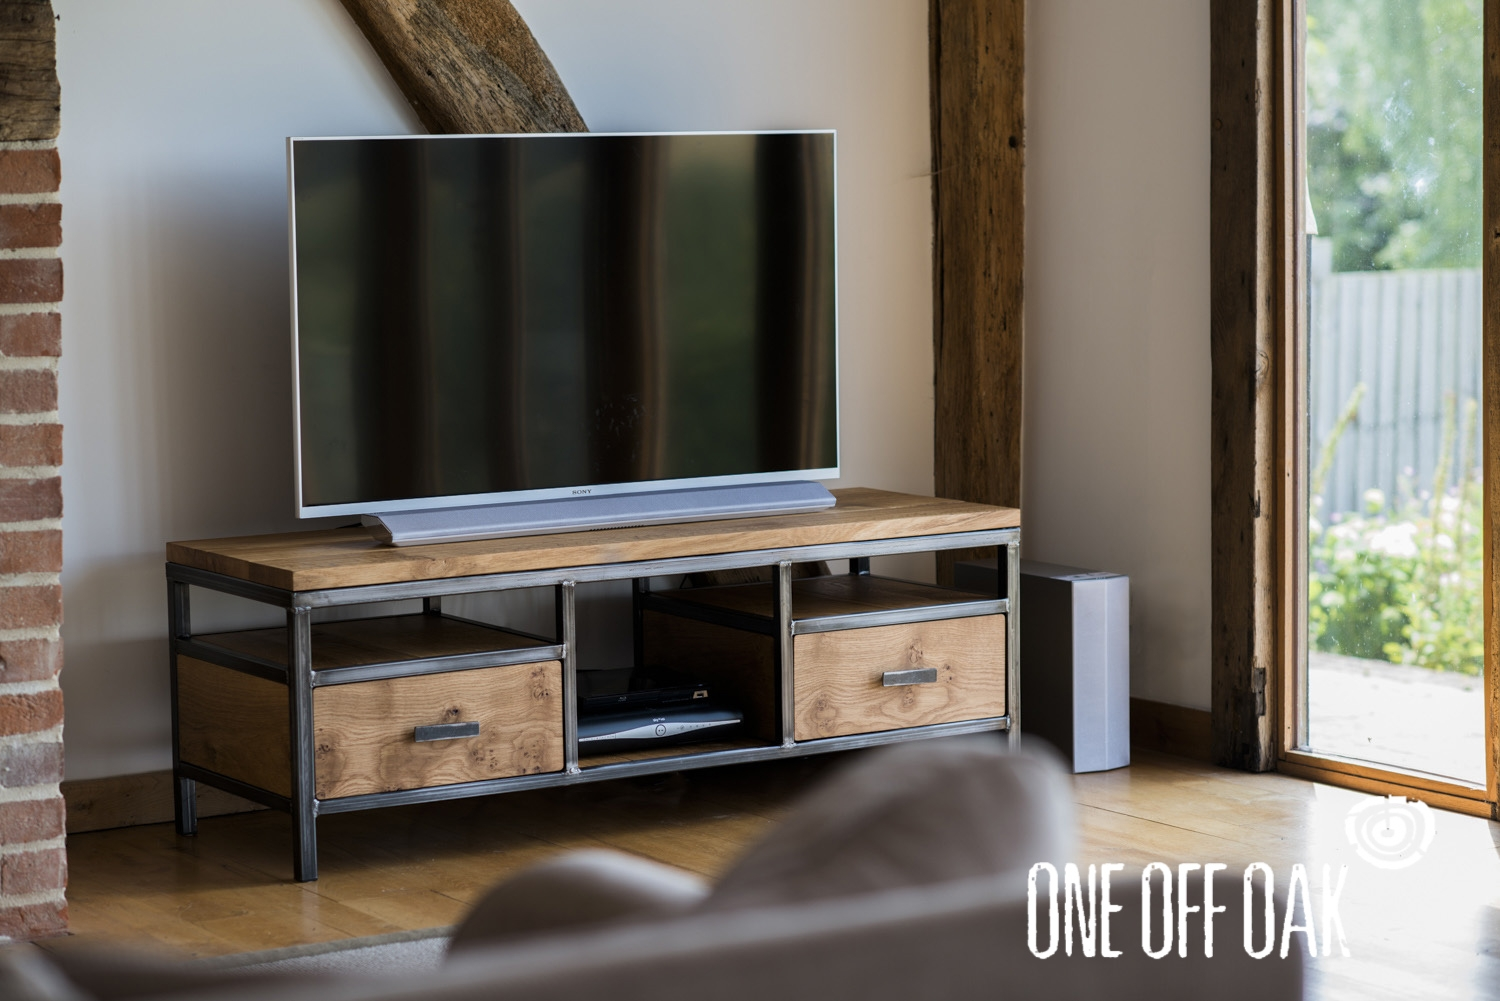 Tv Cabinet Bespoke Handmade Furniture From English Oak Pertaining To Bespoke Tv Cabinets (View 13 of 15)